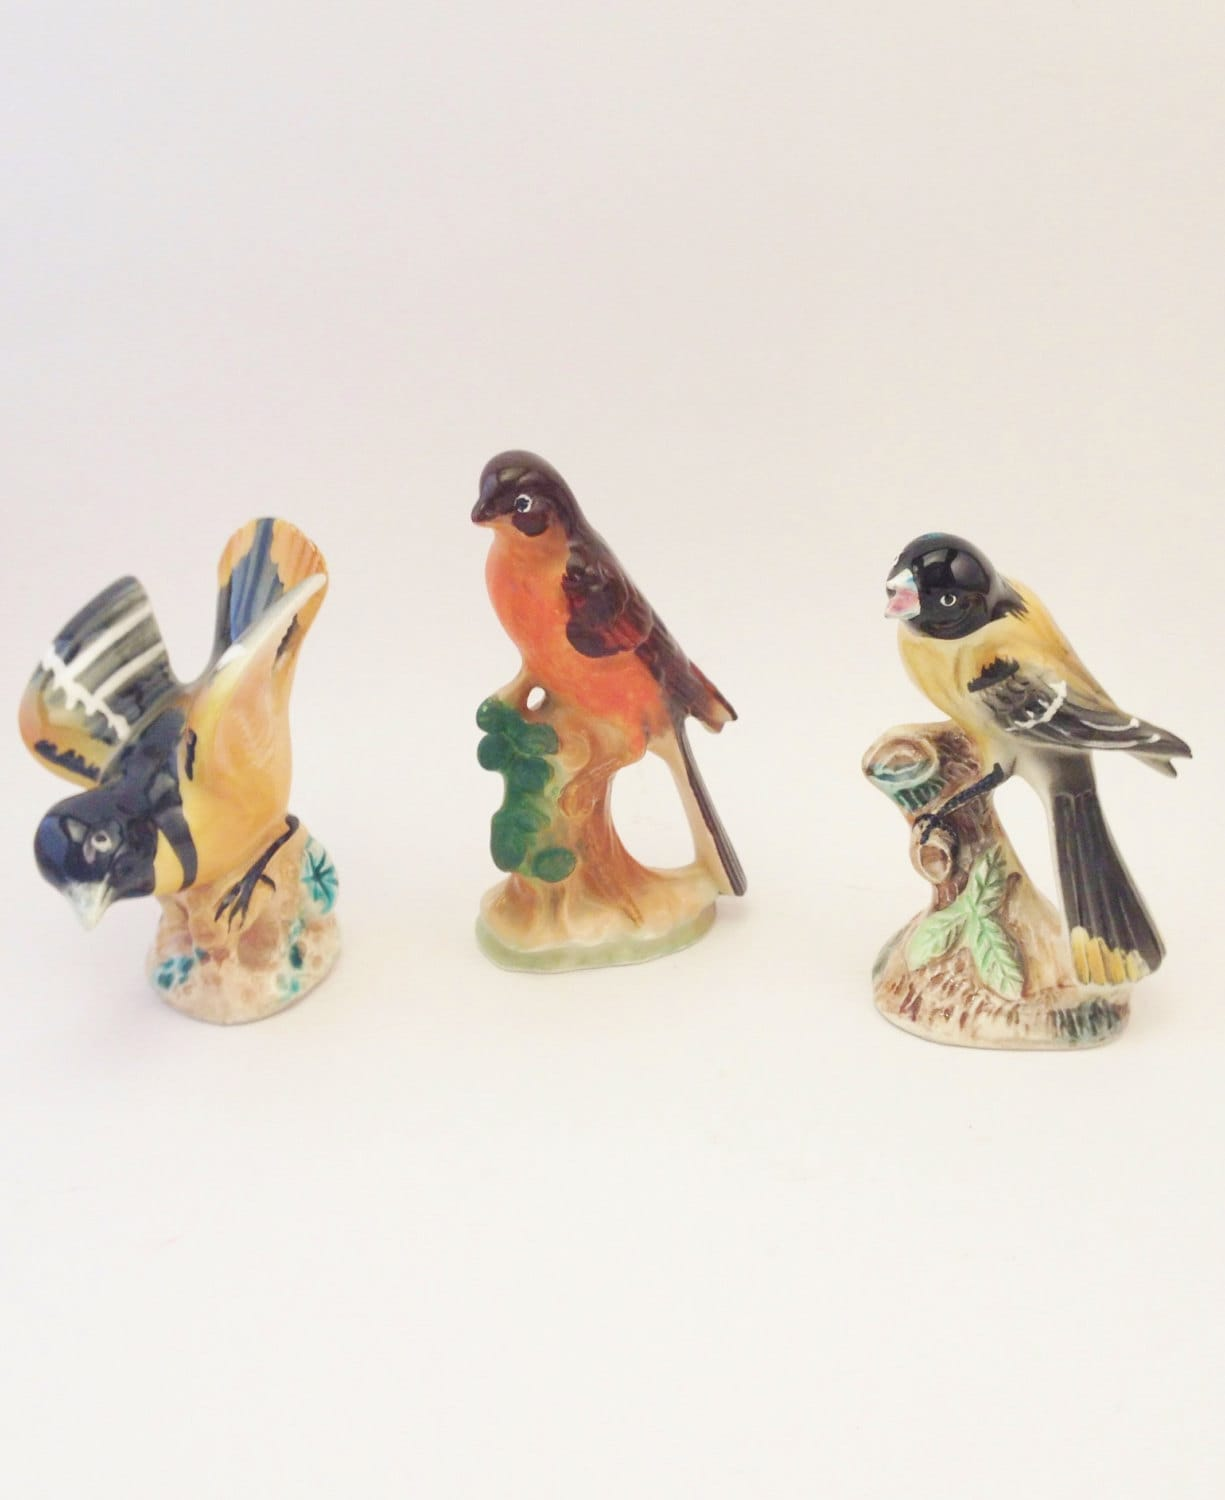 Bird Figurines Vintage Ceramic Birds Orange Yellow Black